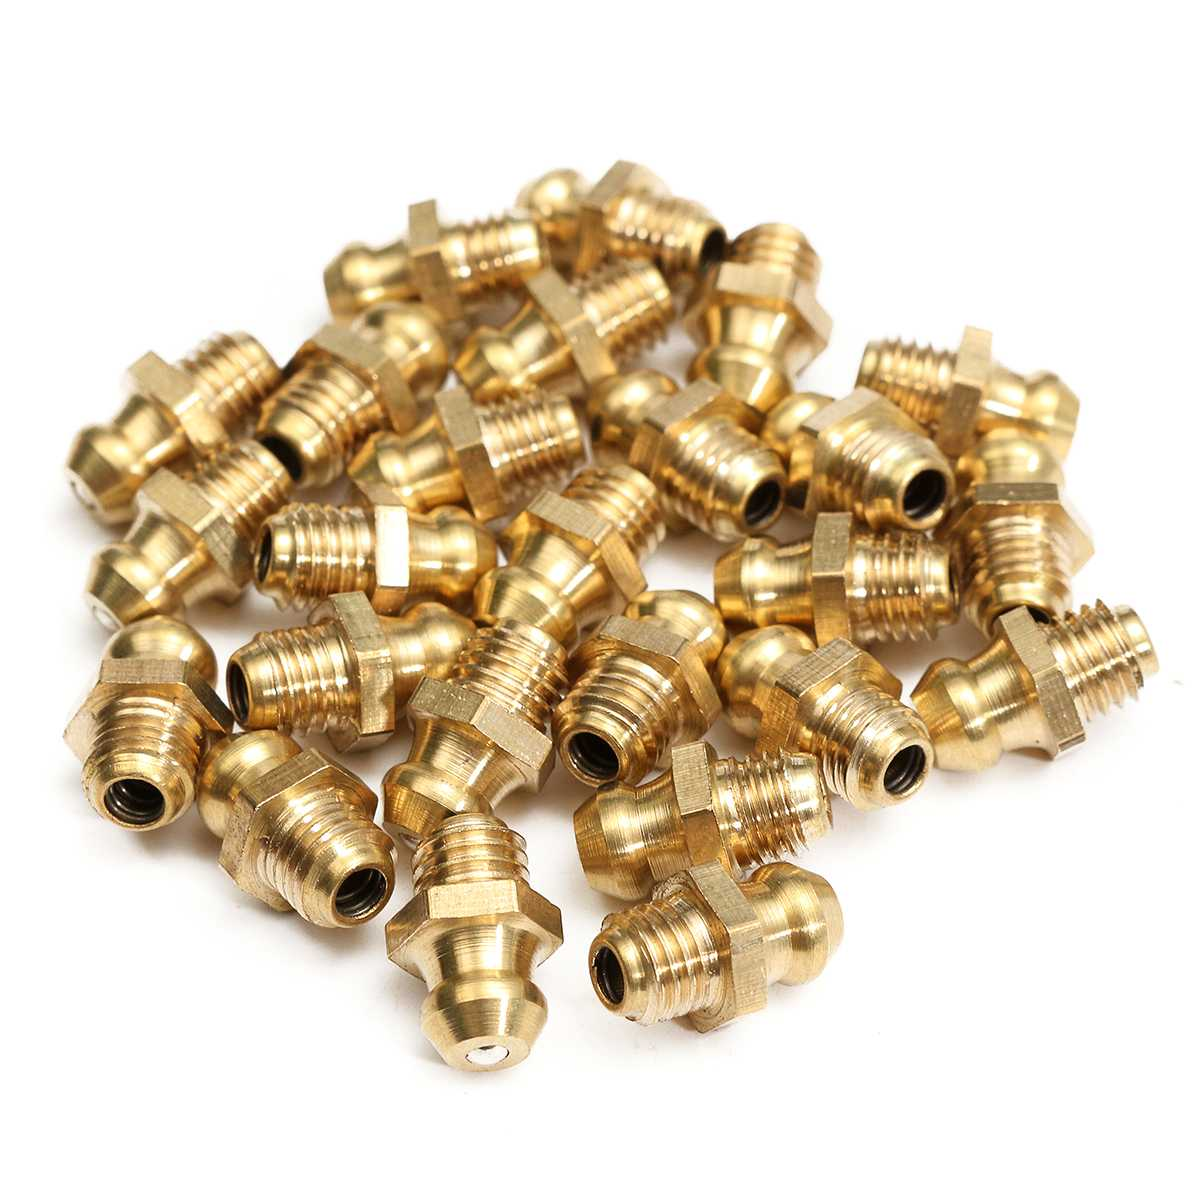 1//4-28 STRAIGHT 15//16 GREASE FITTING ZINC /& DICHROMATE PACK OF 50